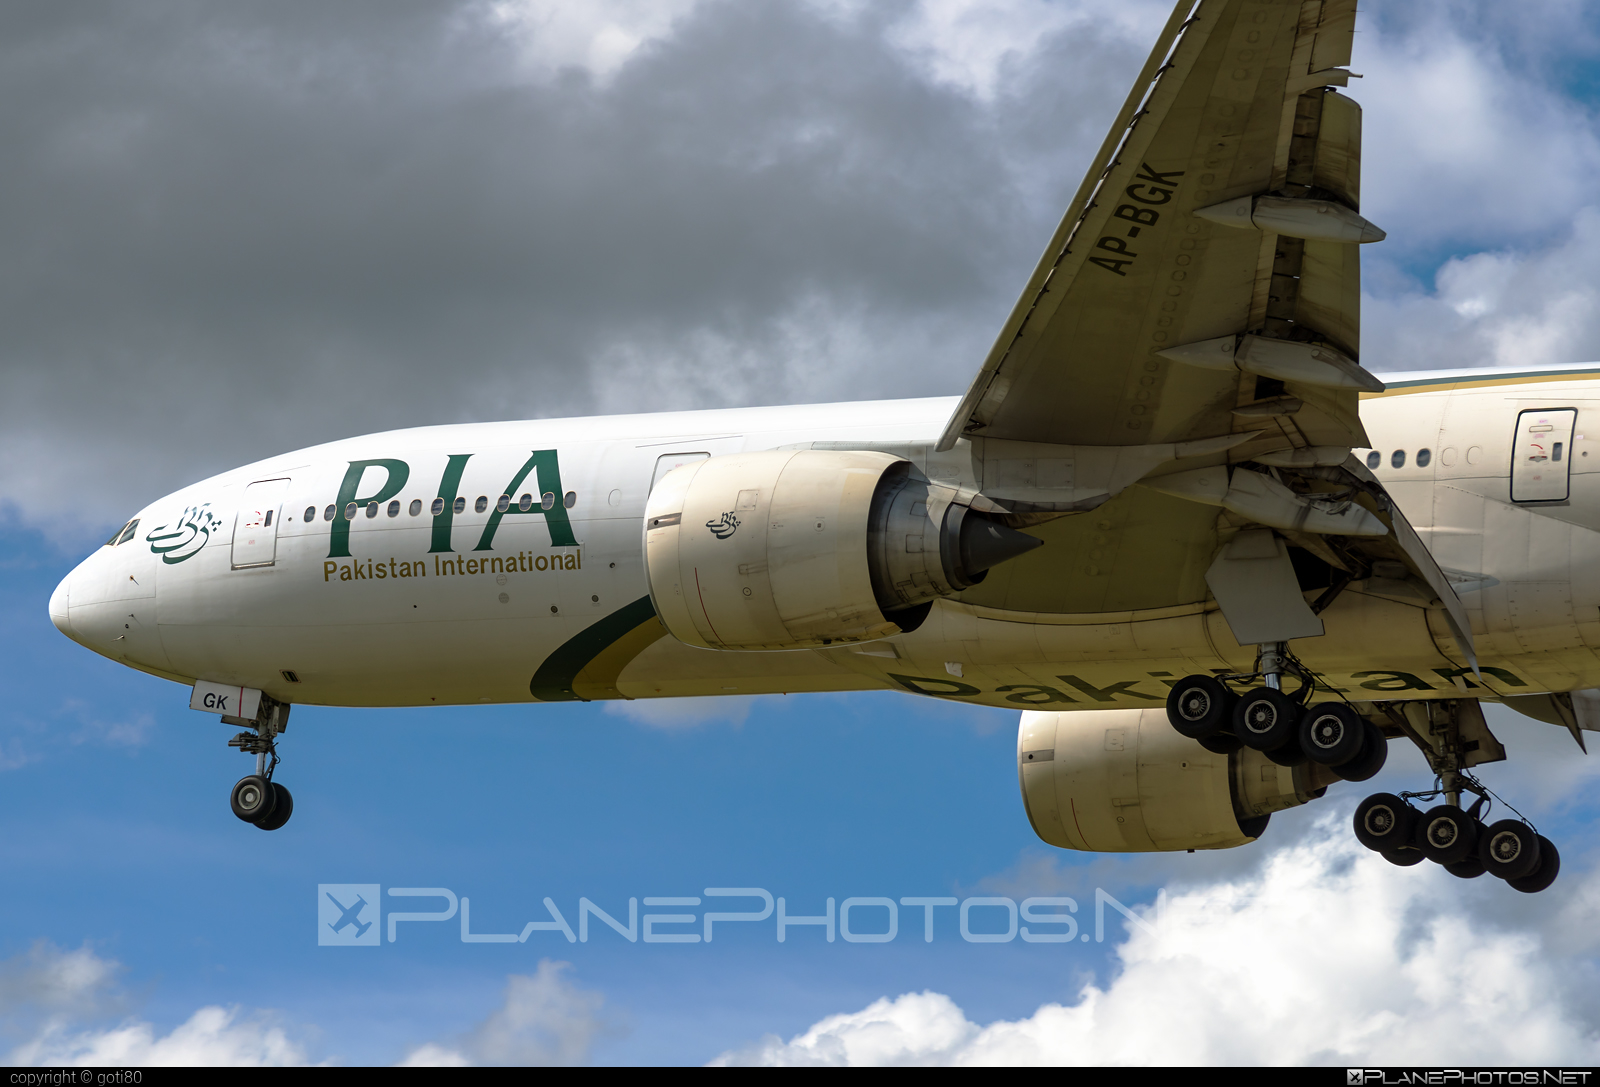 Boeing 777-200ER - AP-BGK operated by Pakistan International Airlines (PIA) #b777 #b777er #boeing #boeing777 #tripleseven